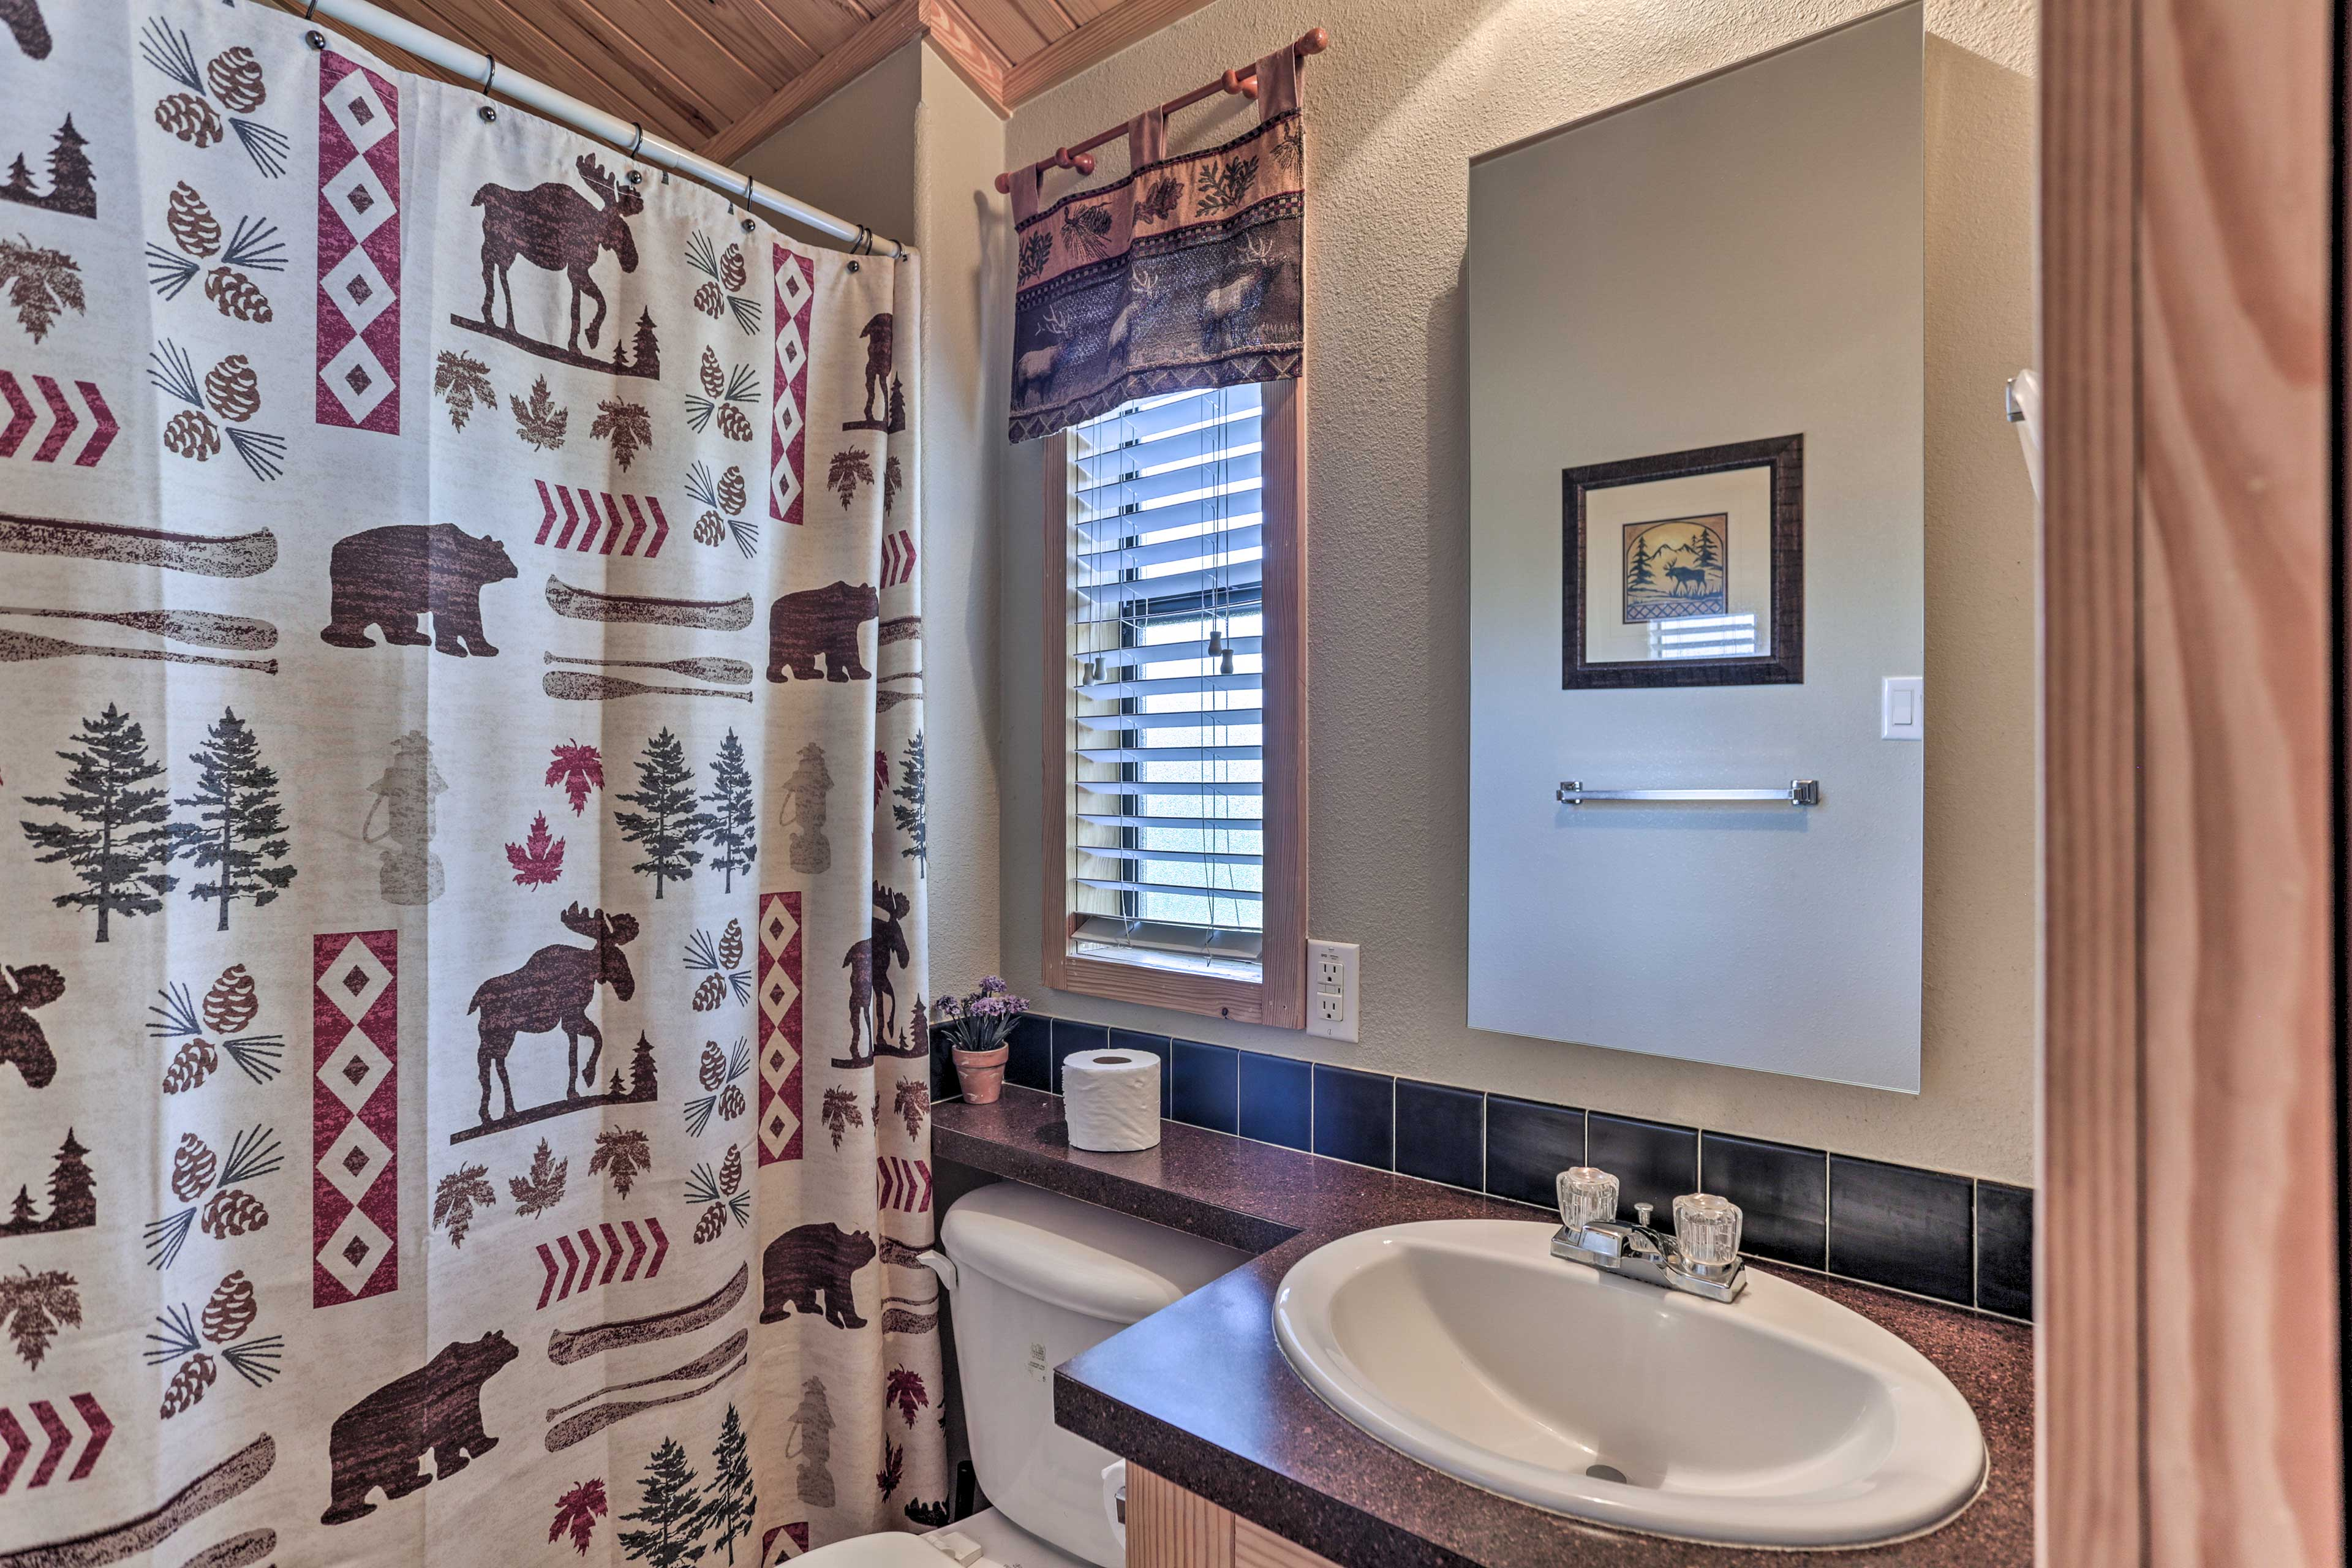 A shower/tub combo is provided in the full bathroom.